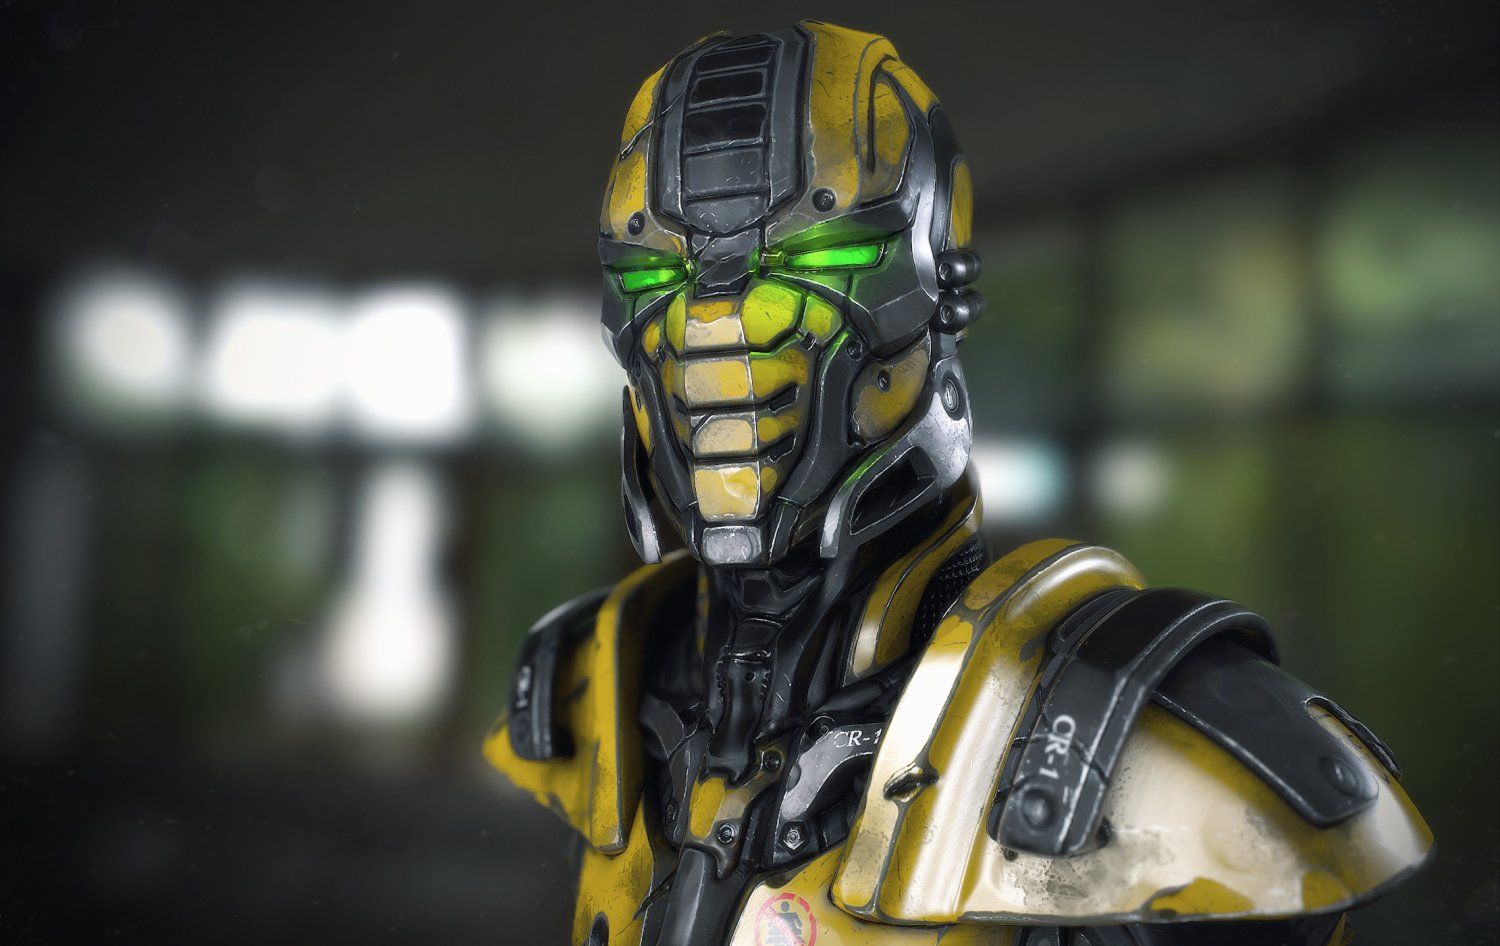 Mortal Kombat Cyrax 3d Model In Monsters Creatures 3dexport Cyrax found it resting upon a small submerged pedestal beneath the molten depths. mortal kombat cyrax 3d model in monsters creatures 3dexport